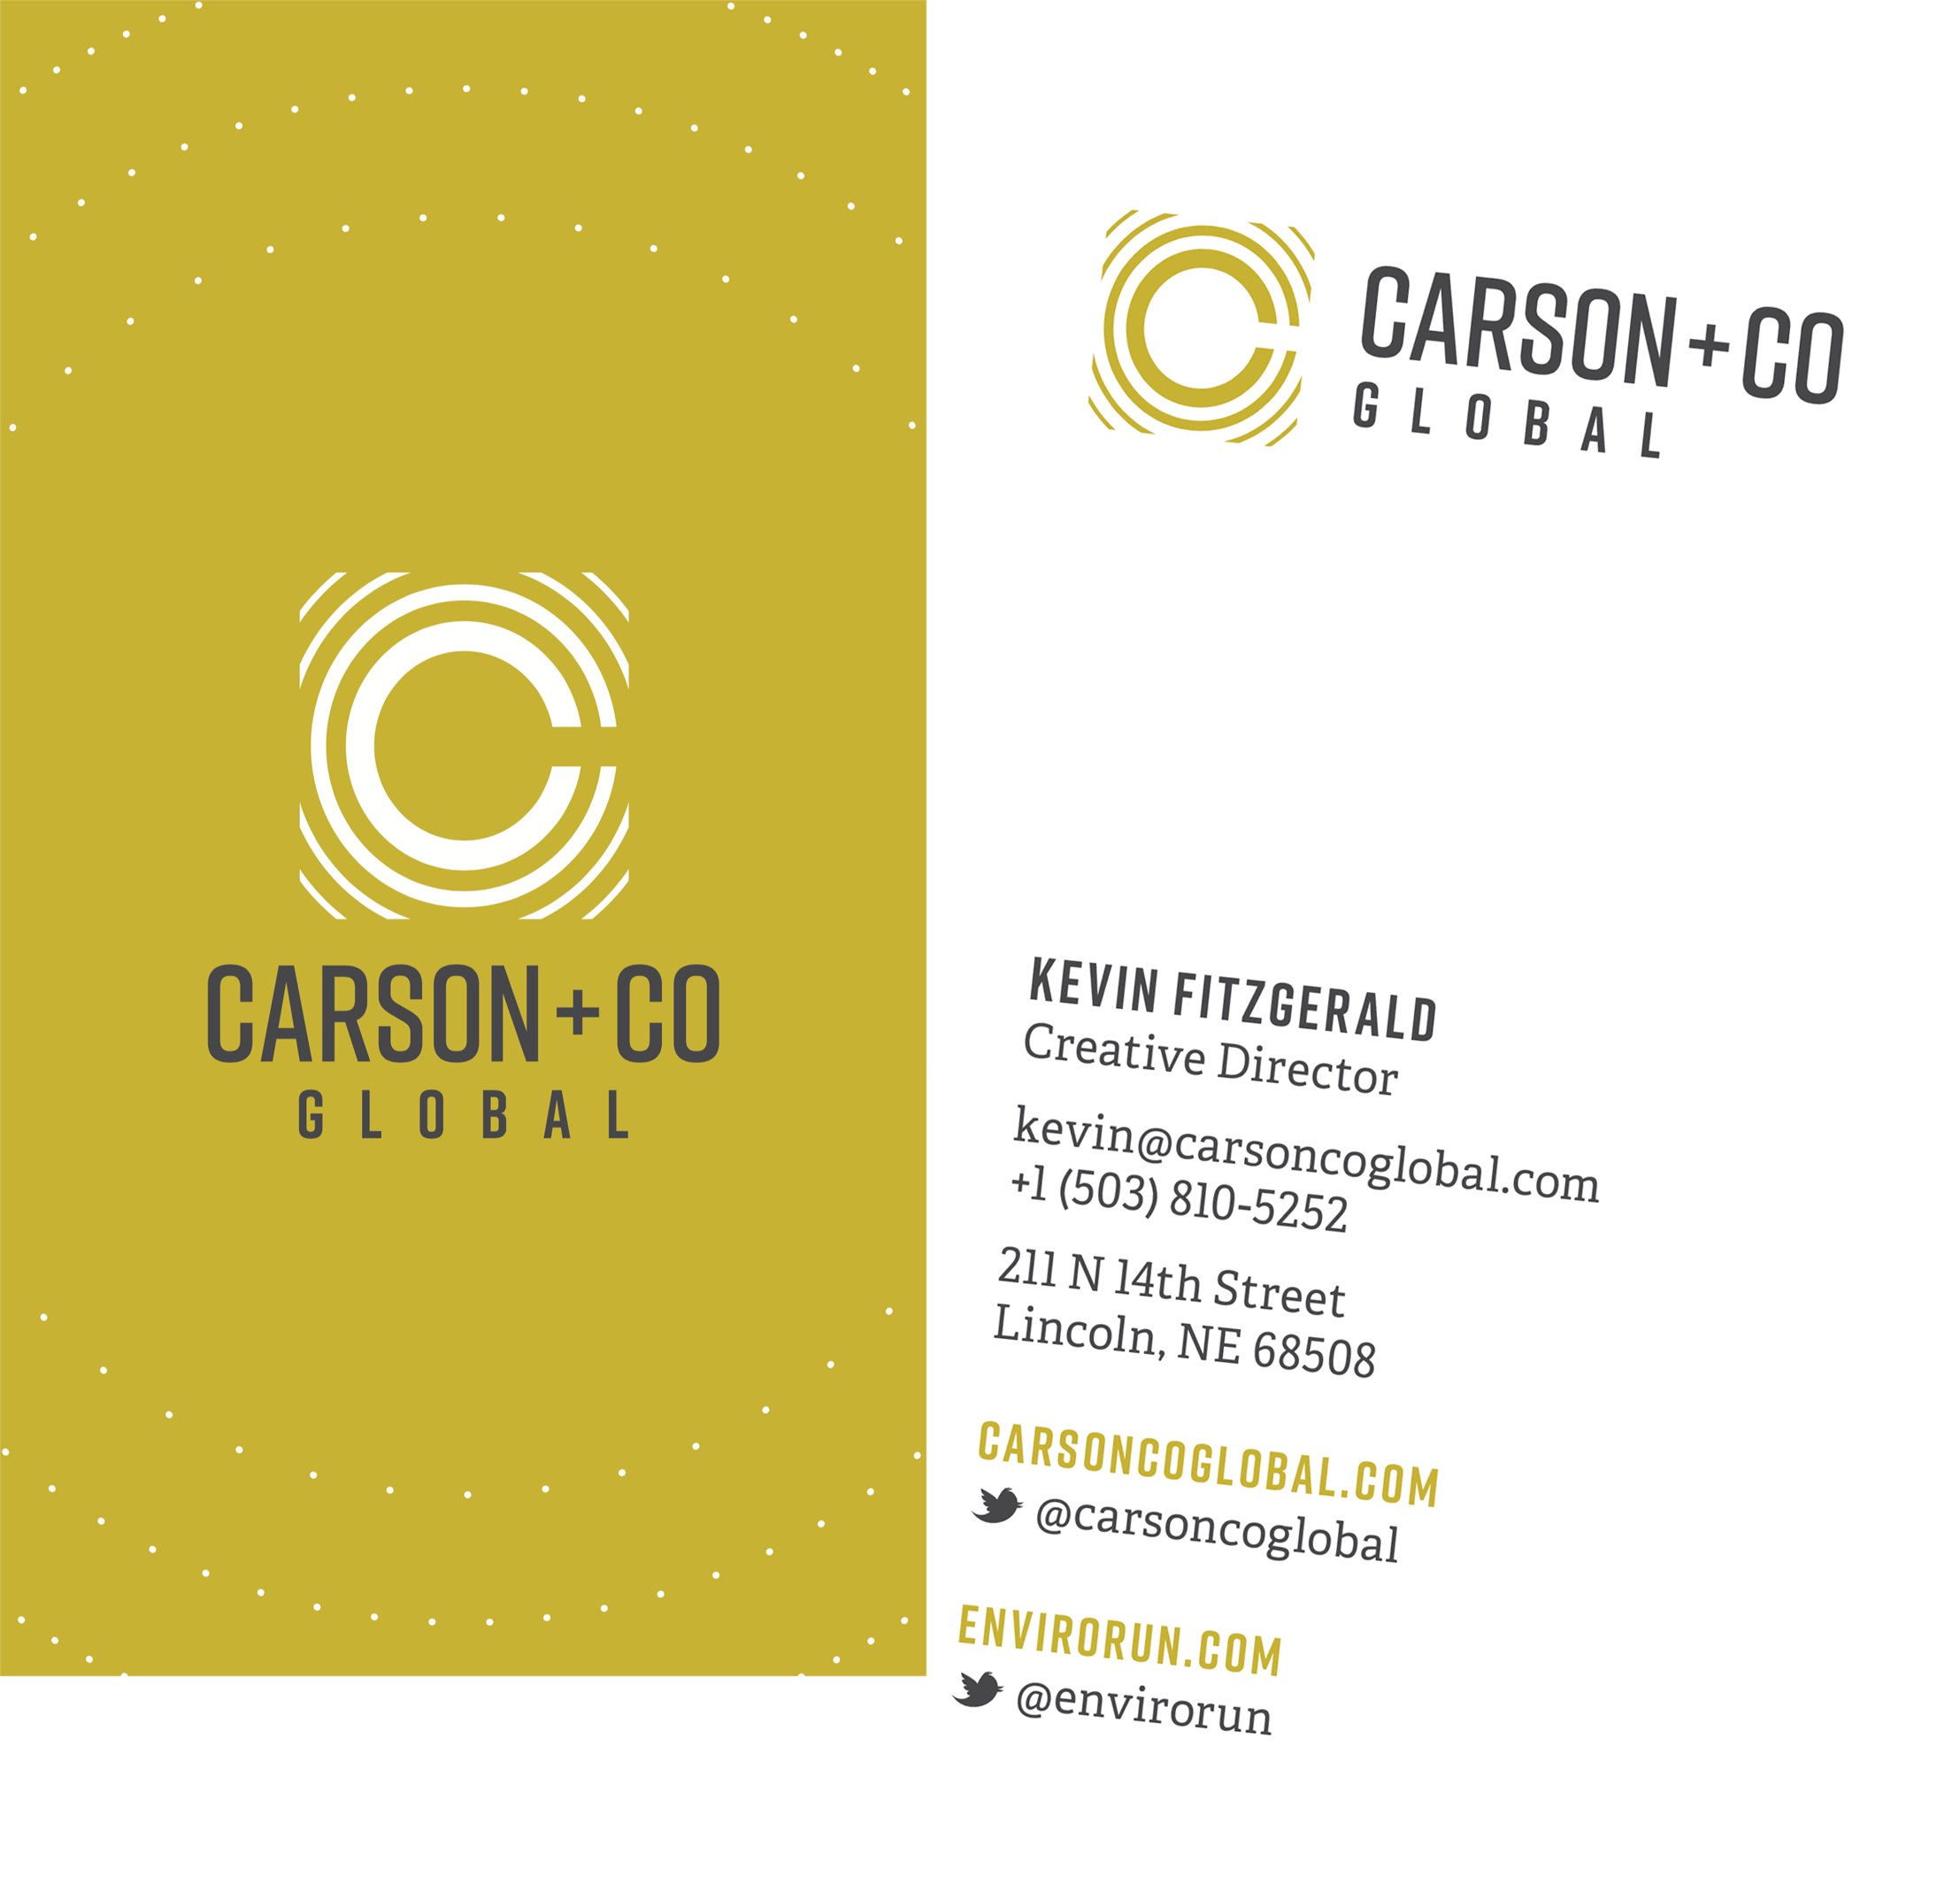 CCG_business_cards_1.png